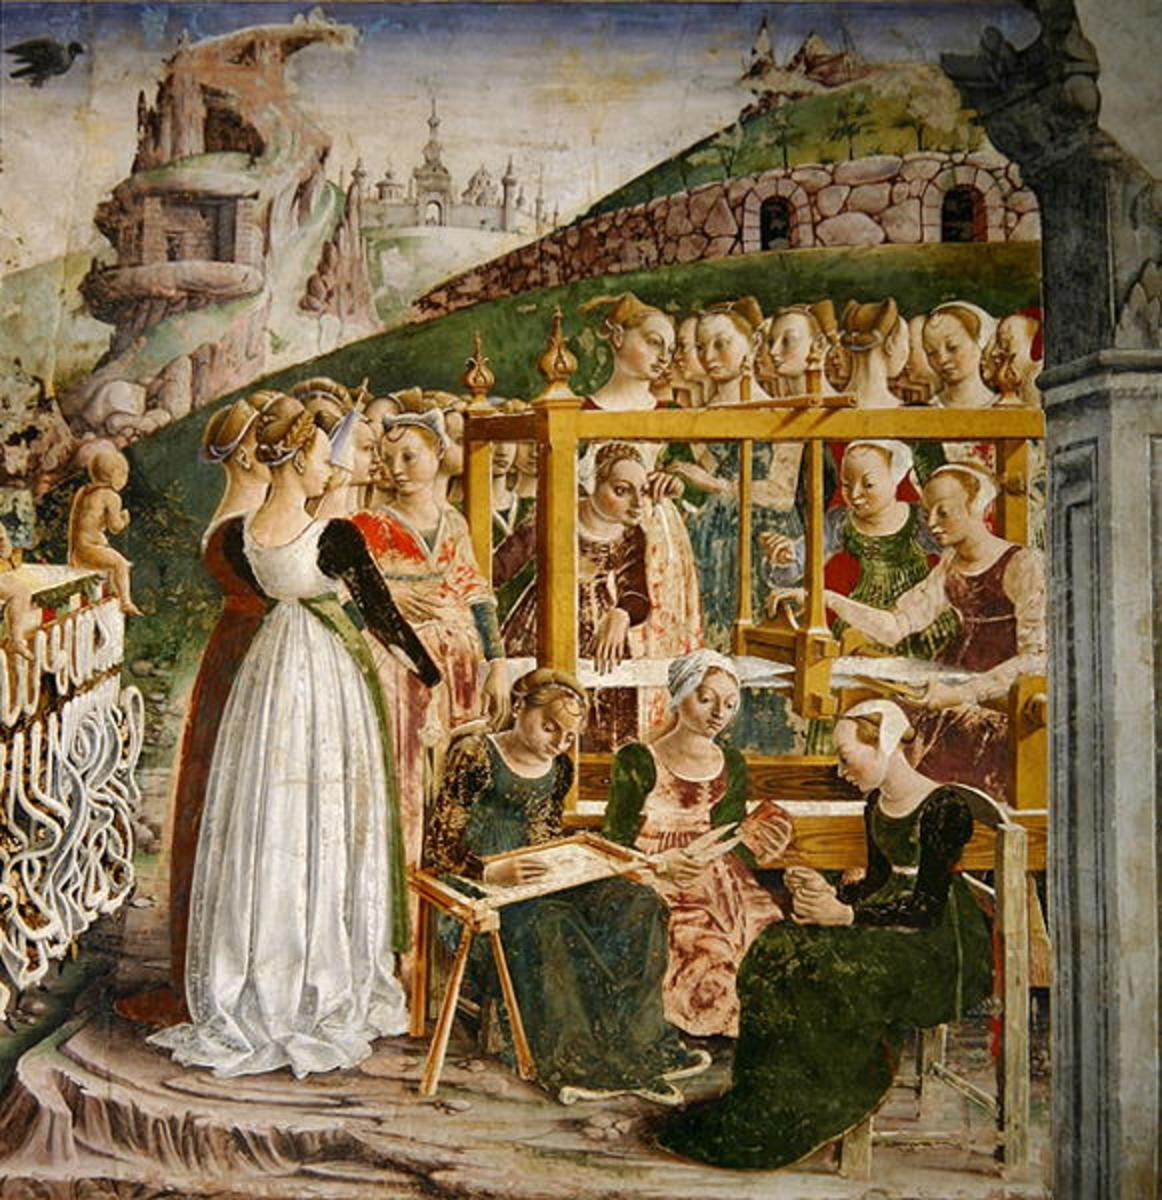 A painting from Francesco del Cossa. See how the crowd gathers around the loom of Arachne?